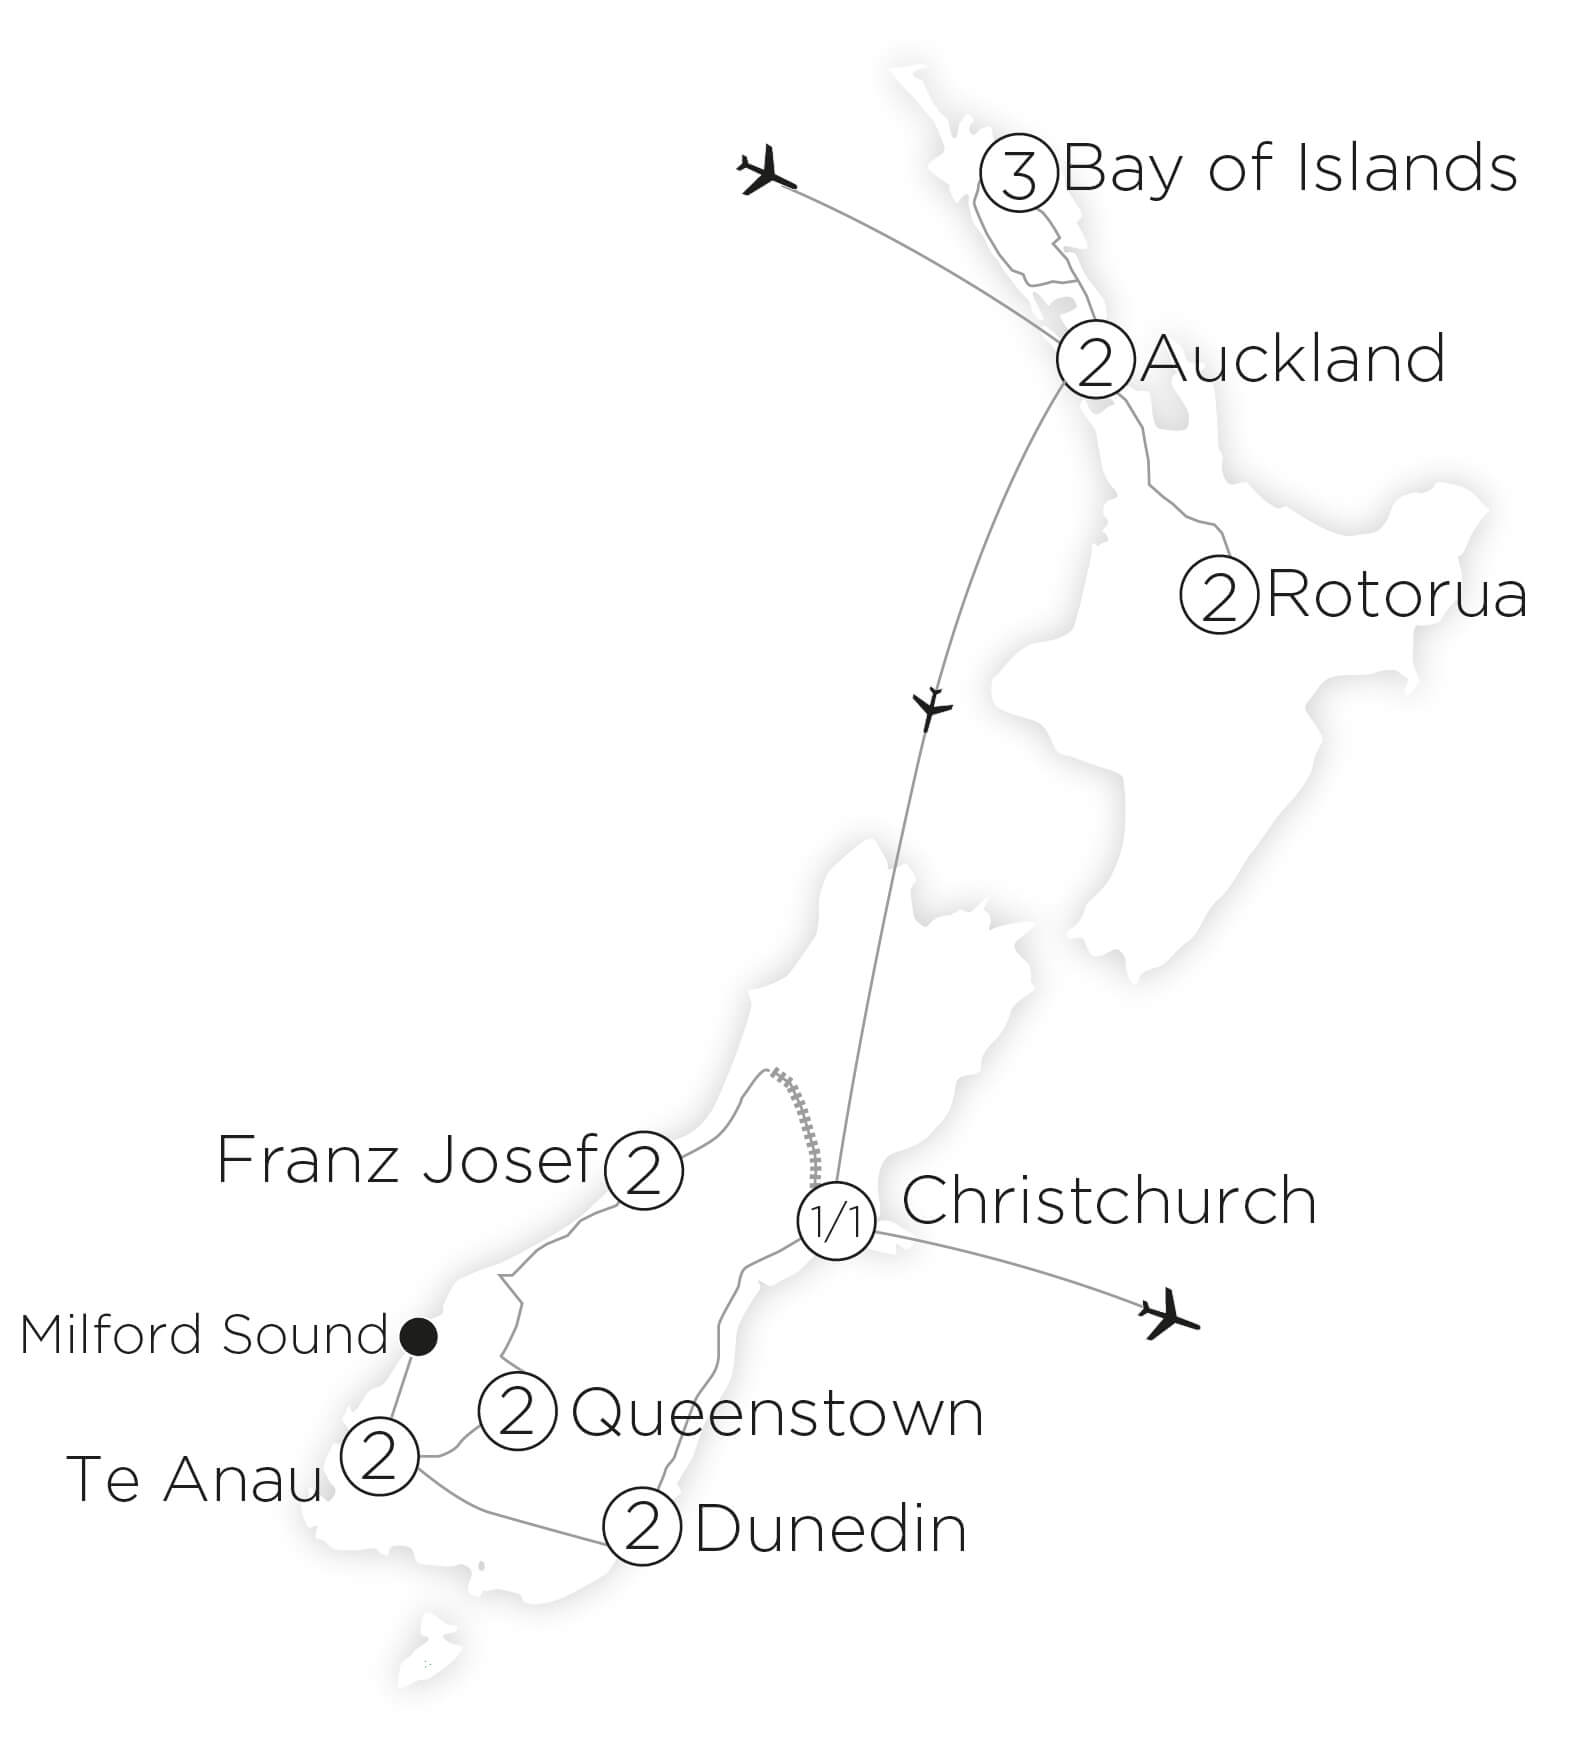 Magnificent New Zealand tour map 2019_20